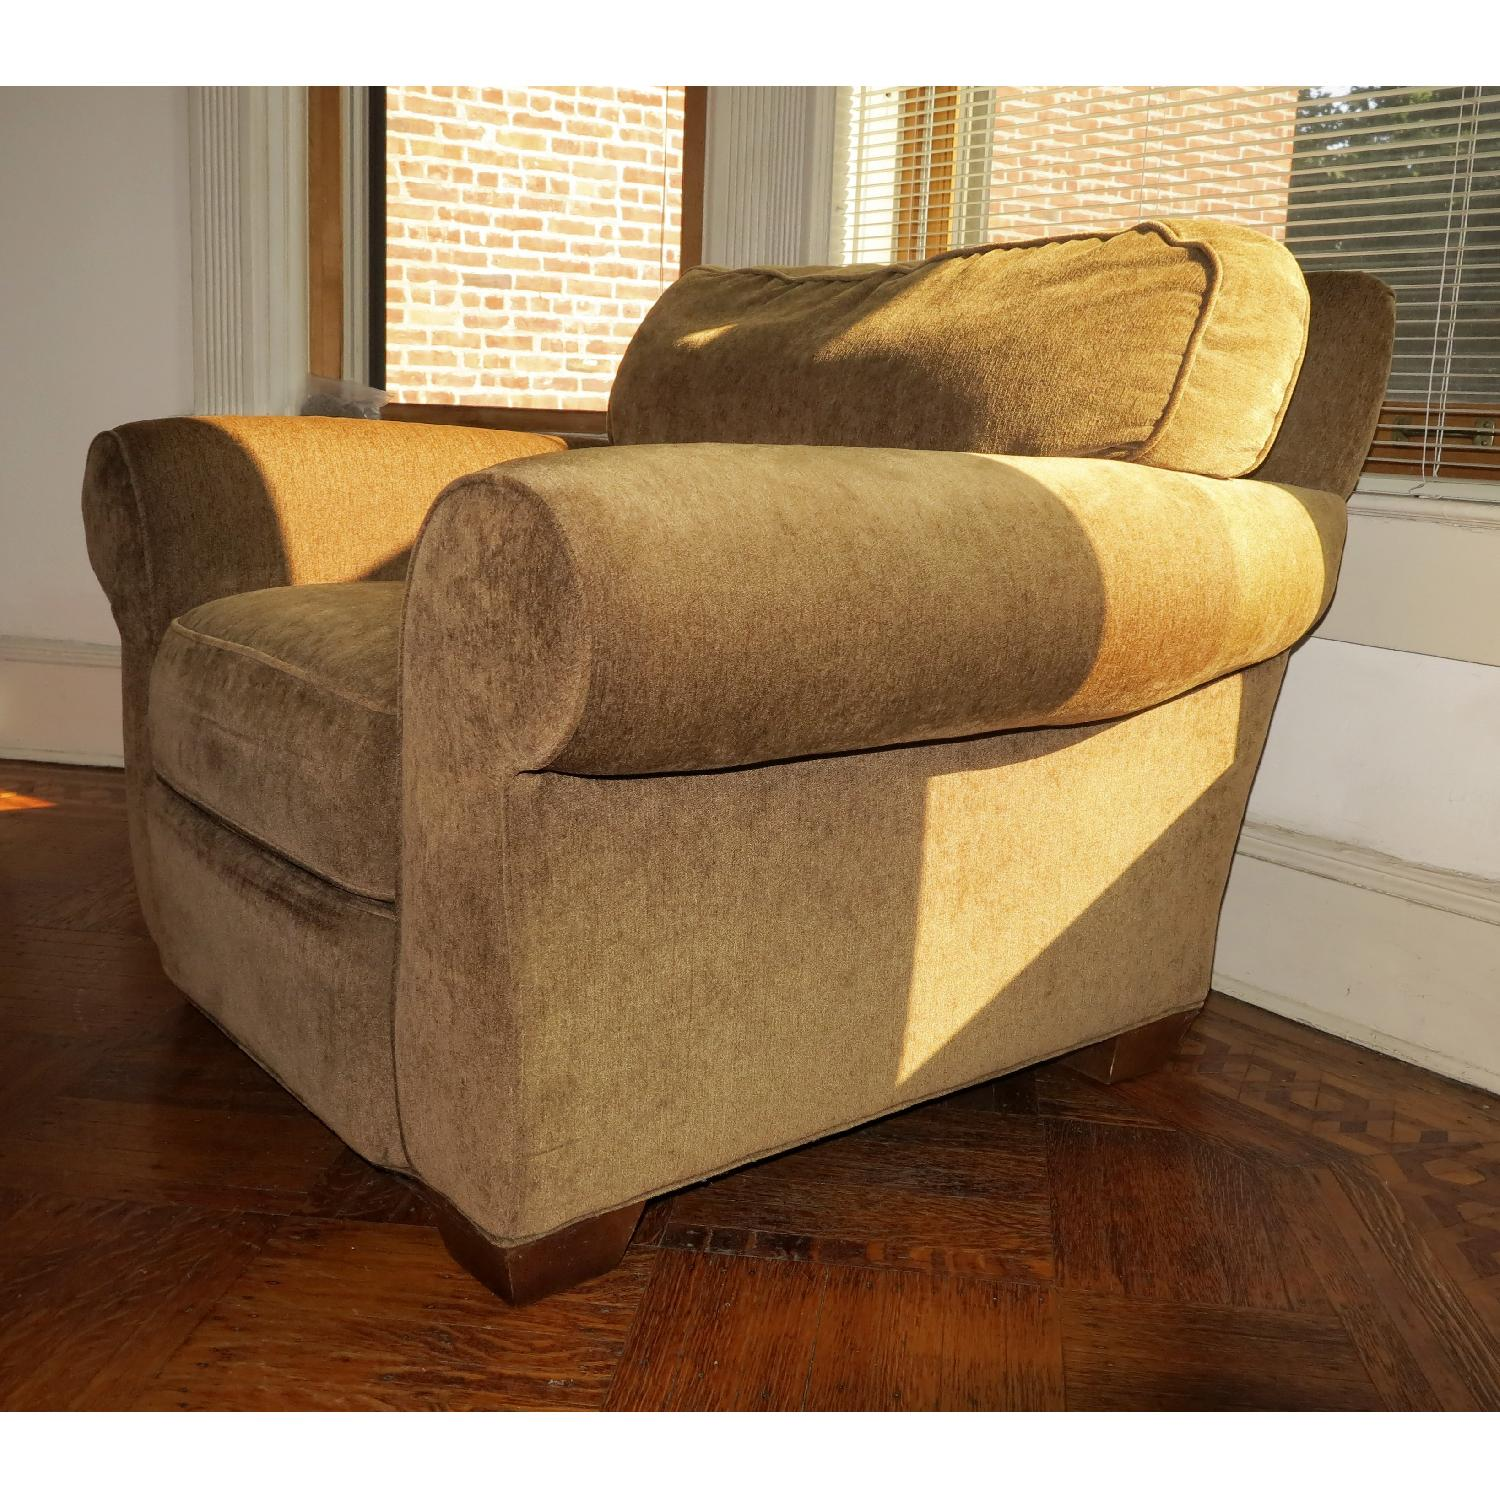 Lee Industries Handcrafted Armchair & Ottoman - image-1